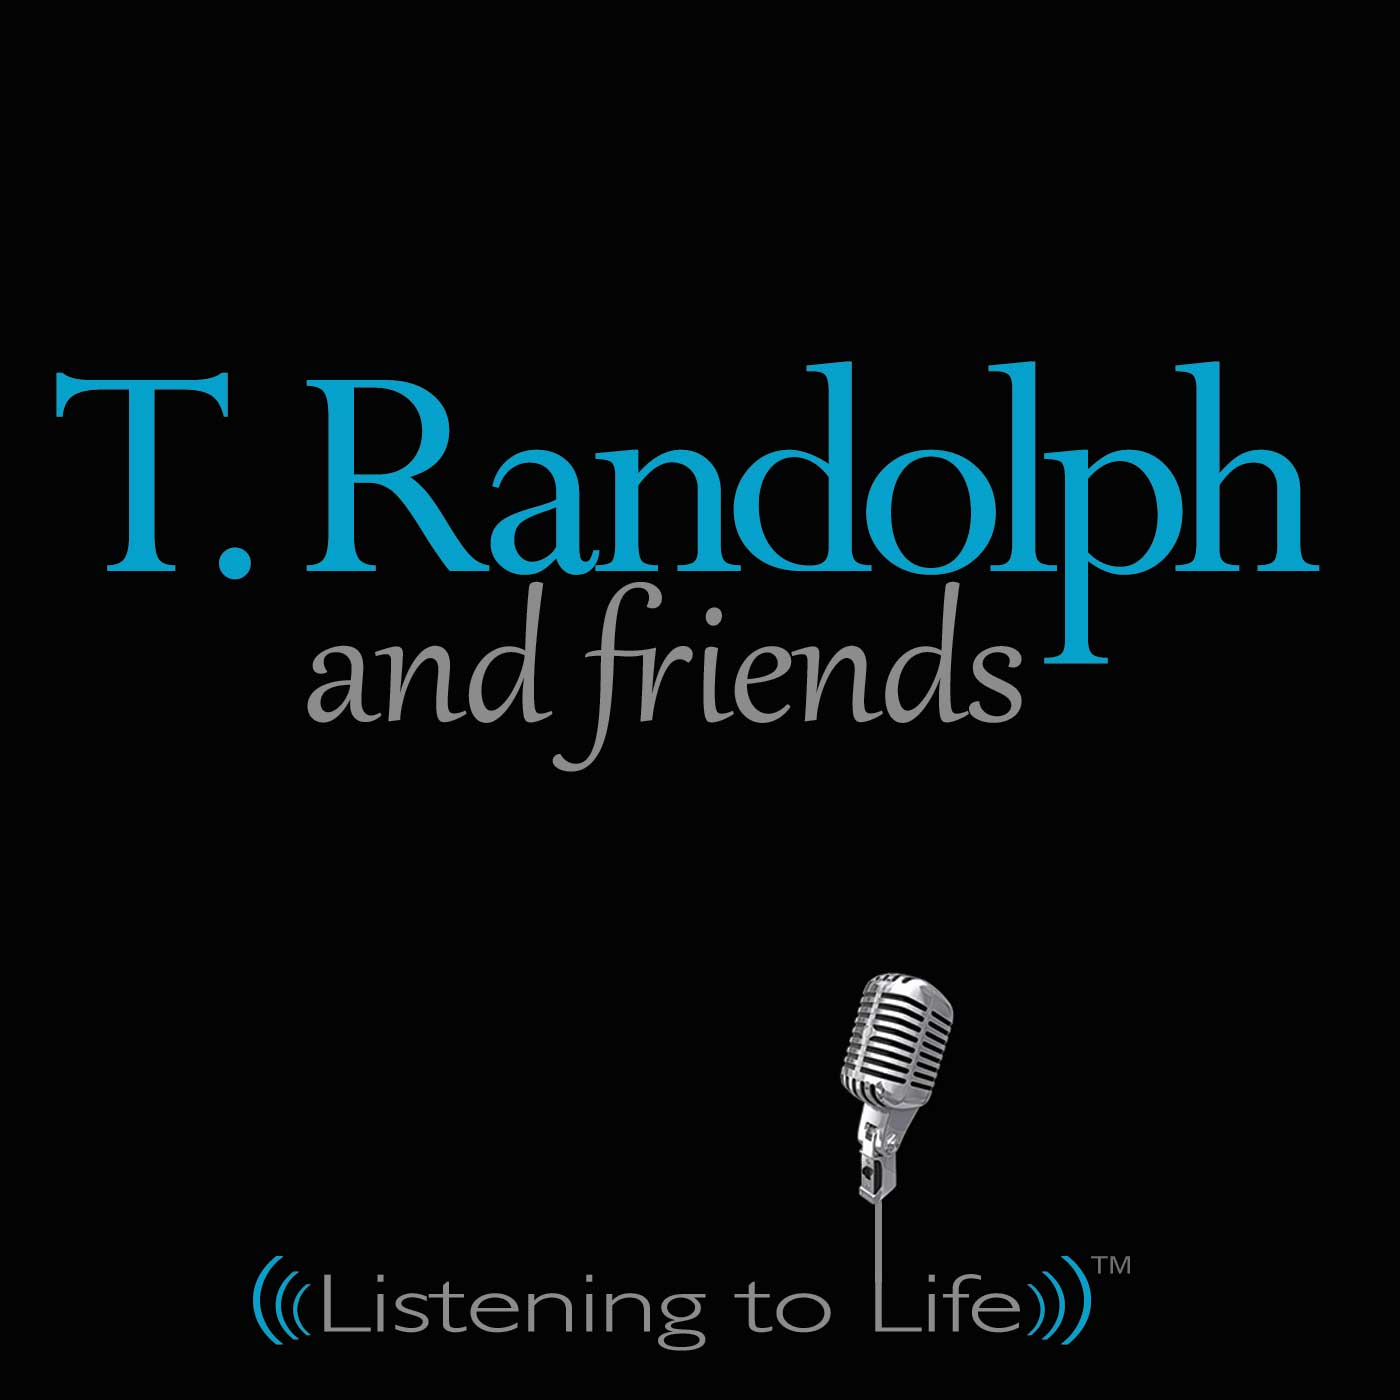 T. Randolph and Friends